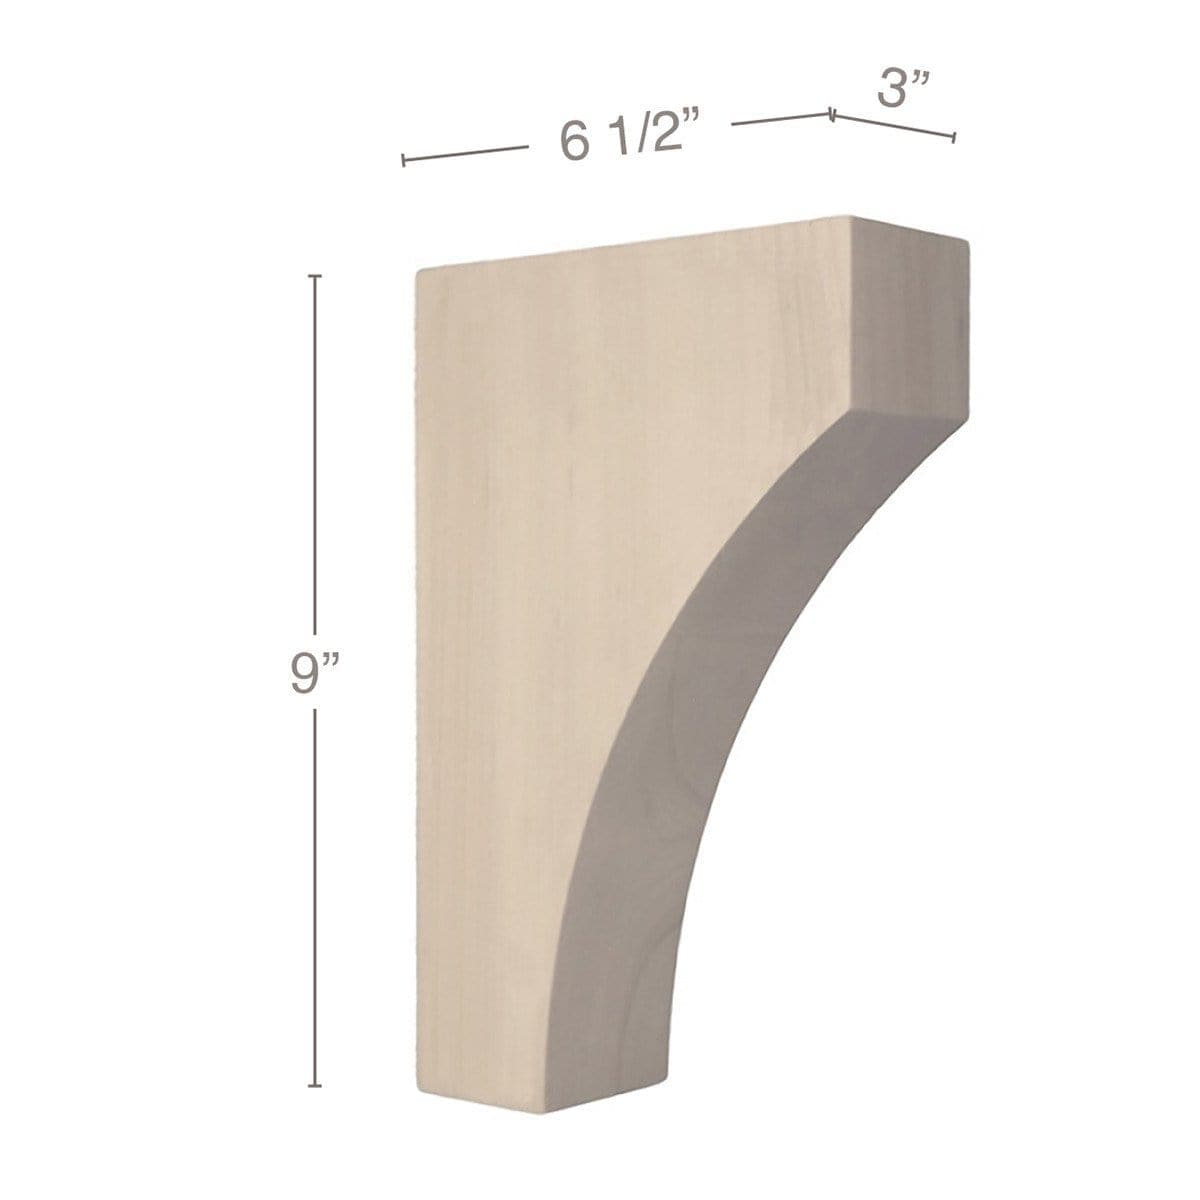 "Contemporary Medium Bar Bracket Corbel, 3""w x 9""h x 6 1/2""d"